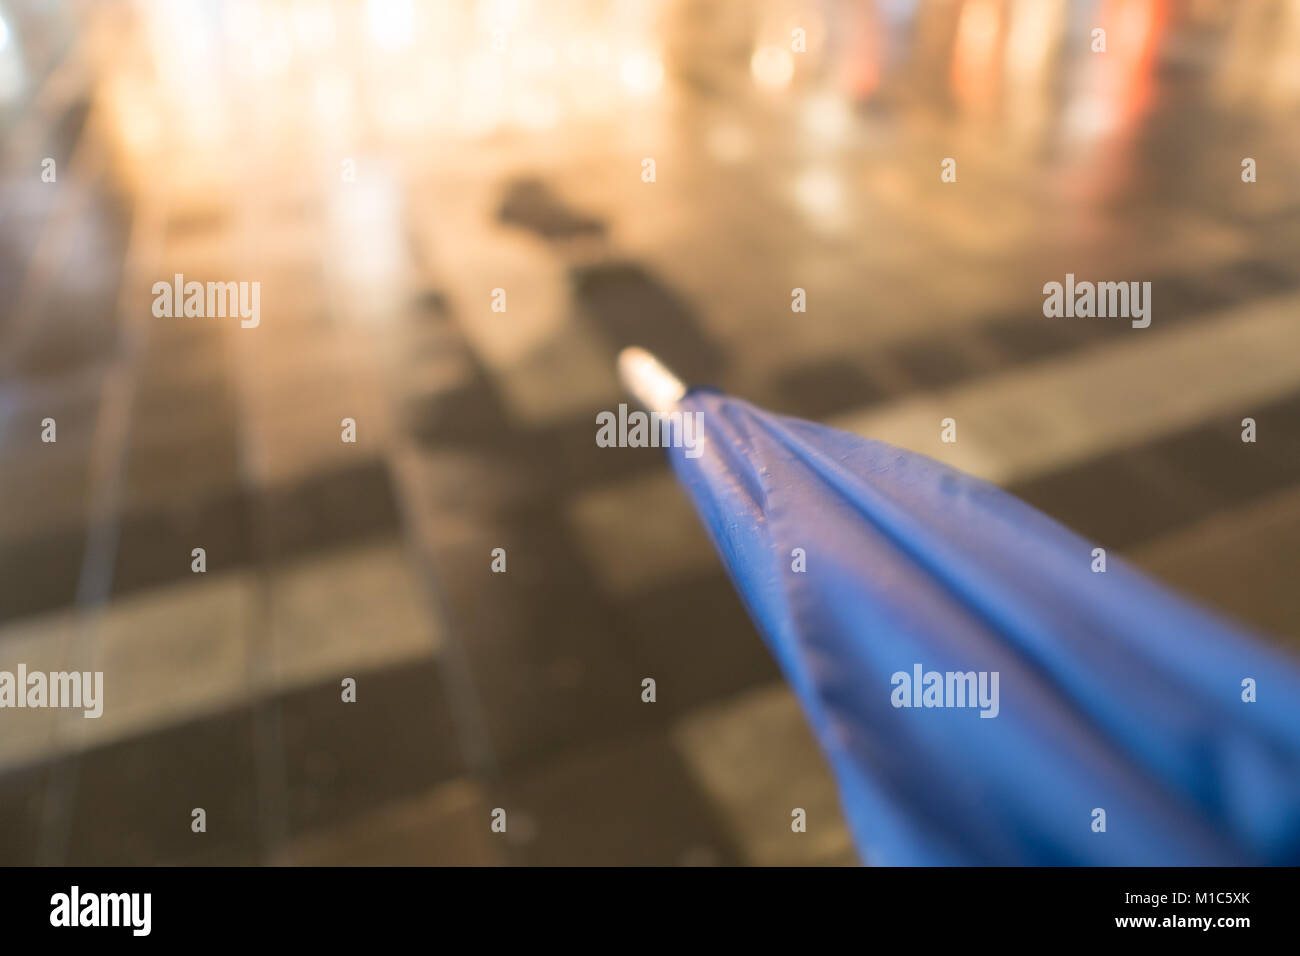 Blurred umbrella with wet stone pavement in the background during night time with nice light reflections - Stock Image